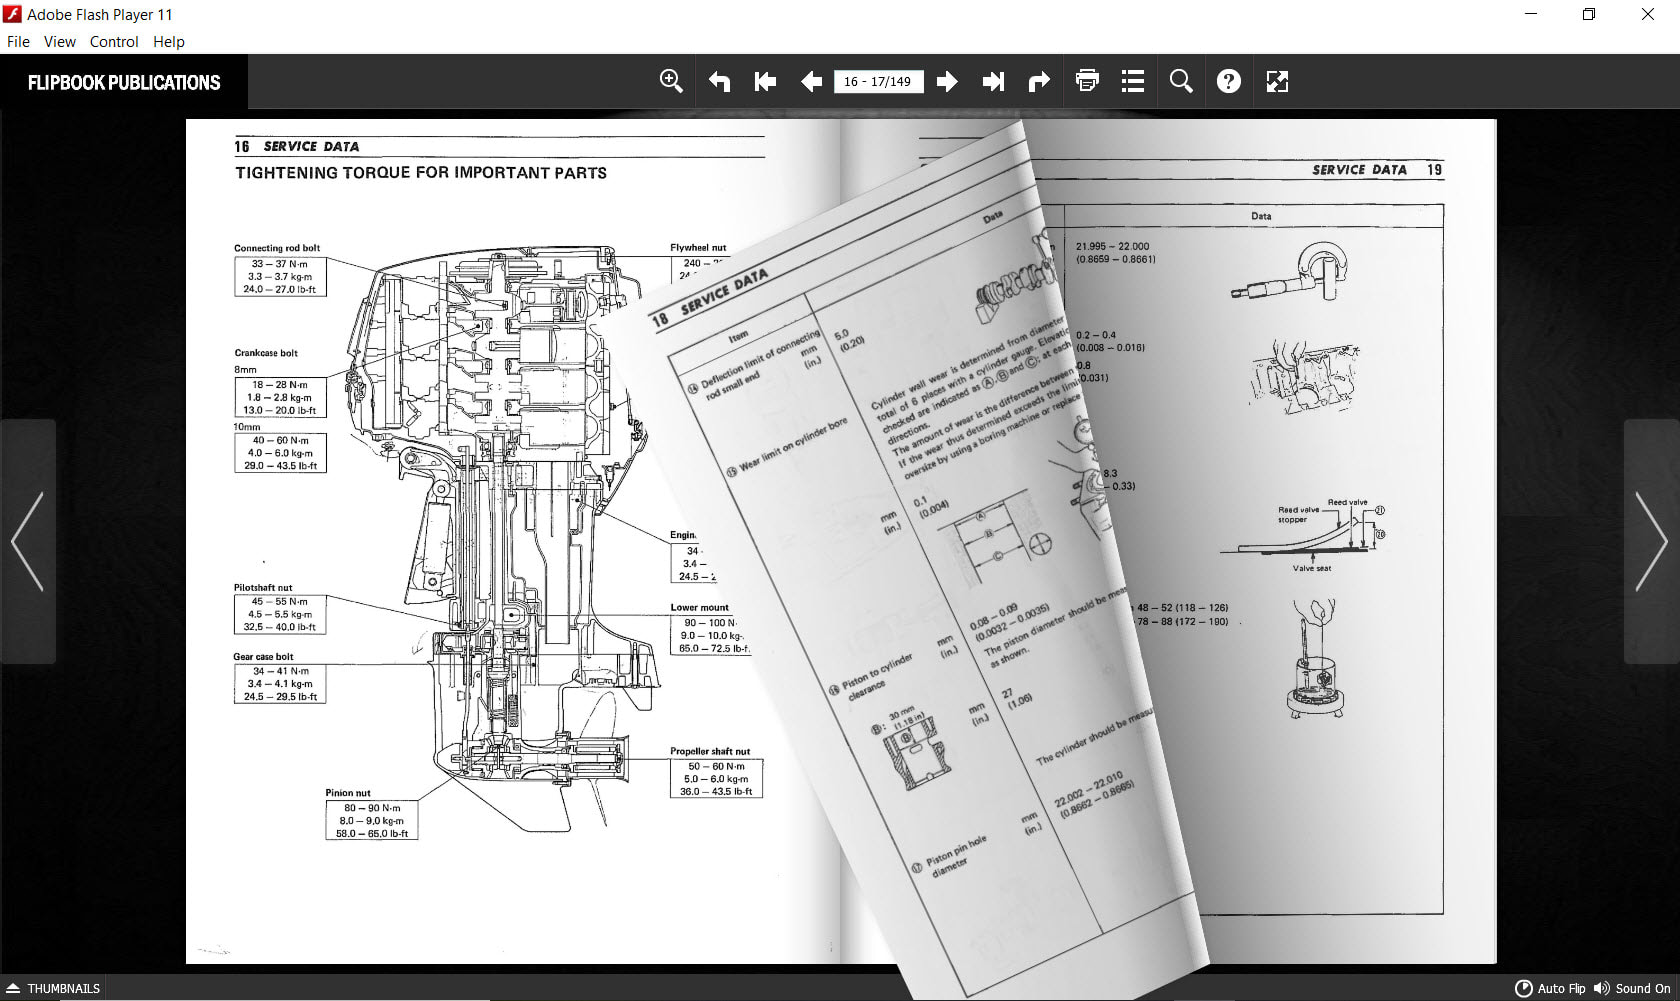 2018 Arctic Cat Atv Rov Wiring Diagram Manual Download